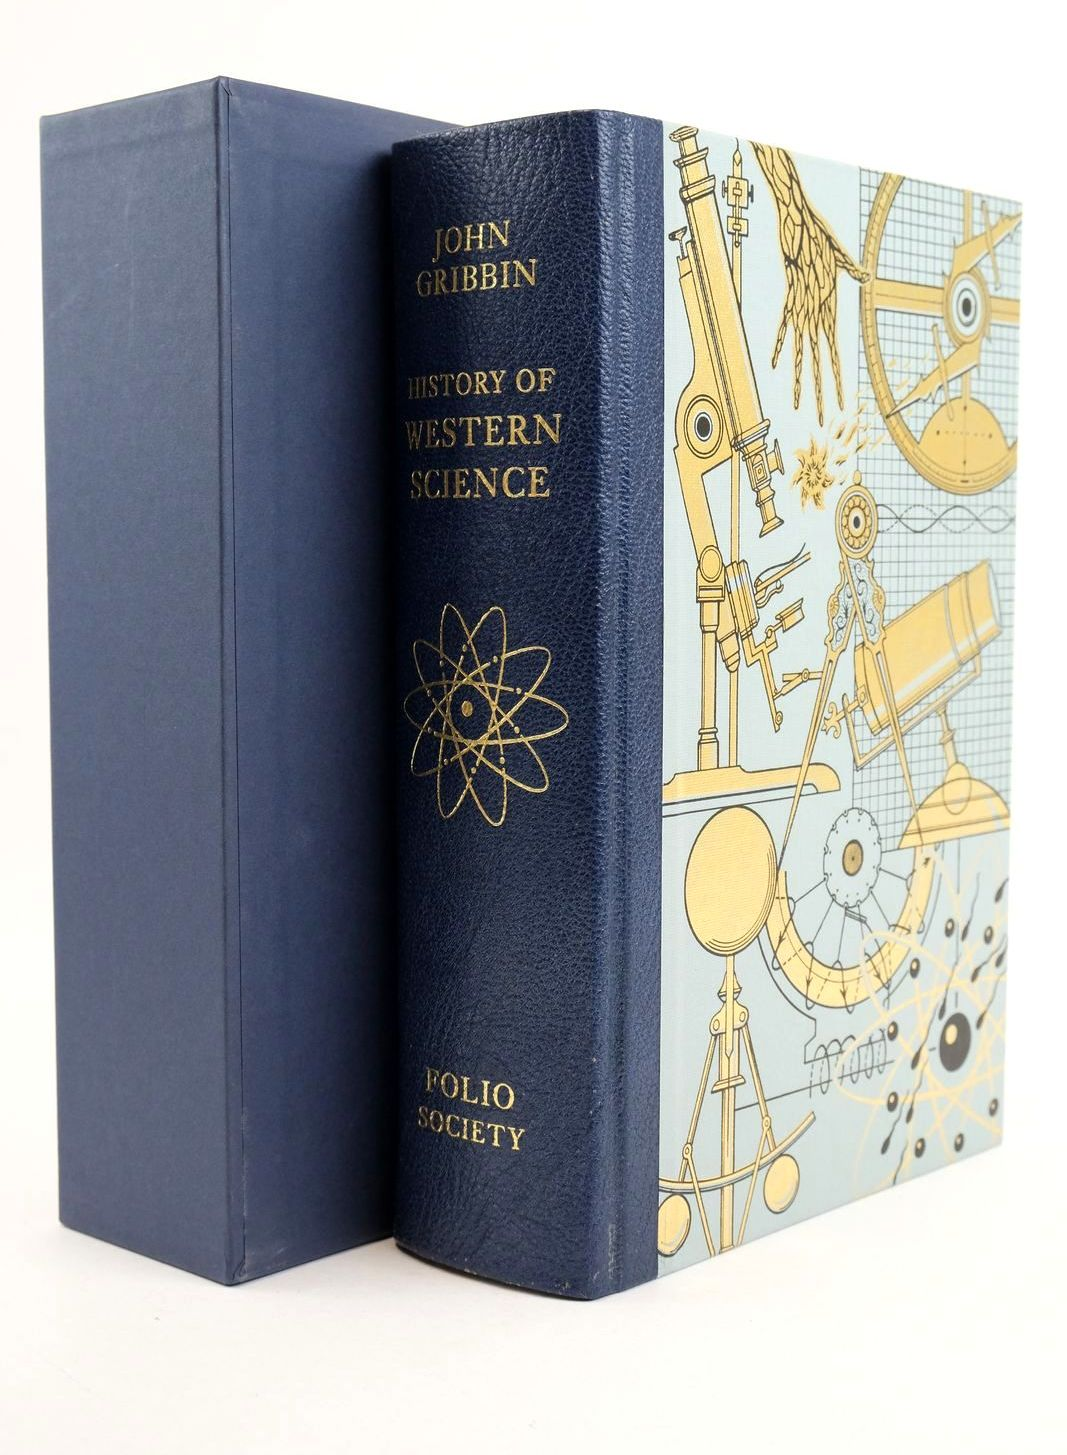 Photo of HISTORY OF WESTERN SCIENCE 1543-2001 written by Gribbin, John published by Folio Society (STOCK CODE: 1318919)  for sale by Stella & Rose's Books